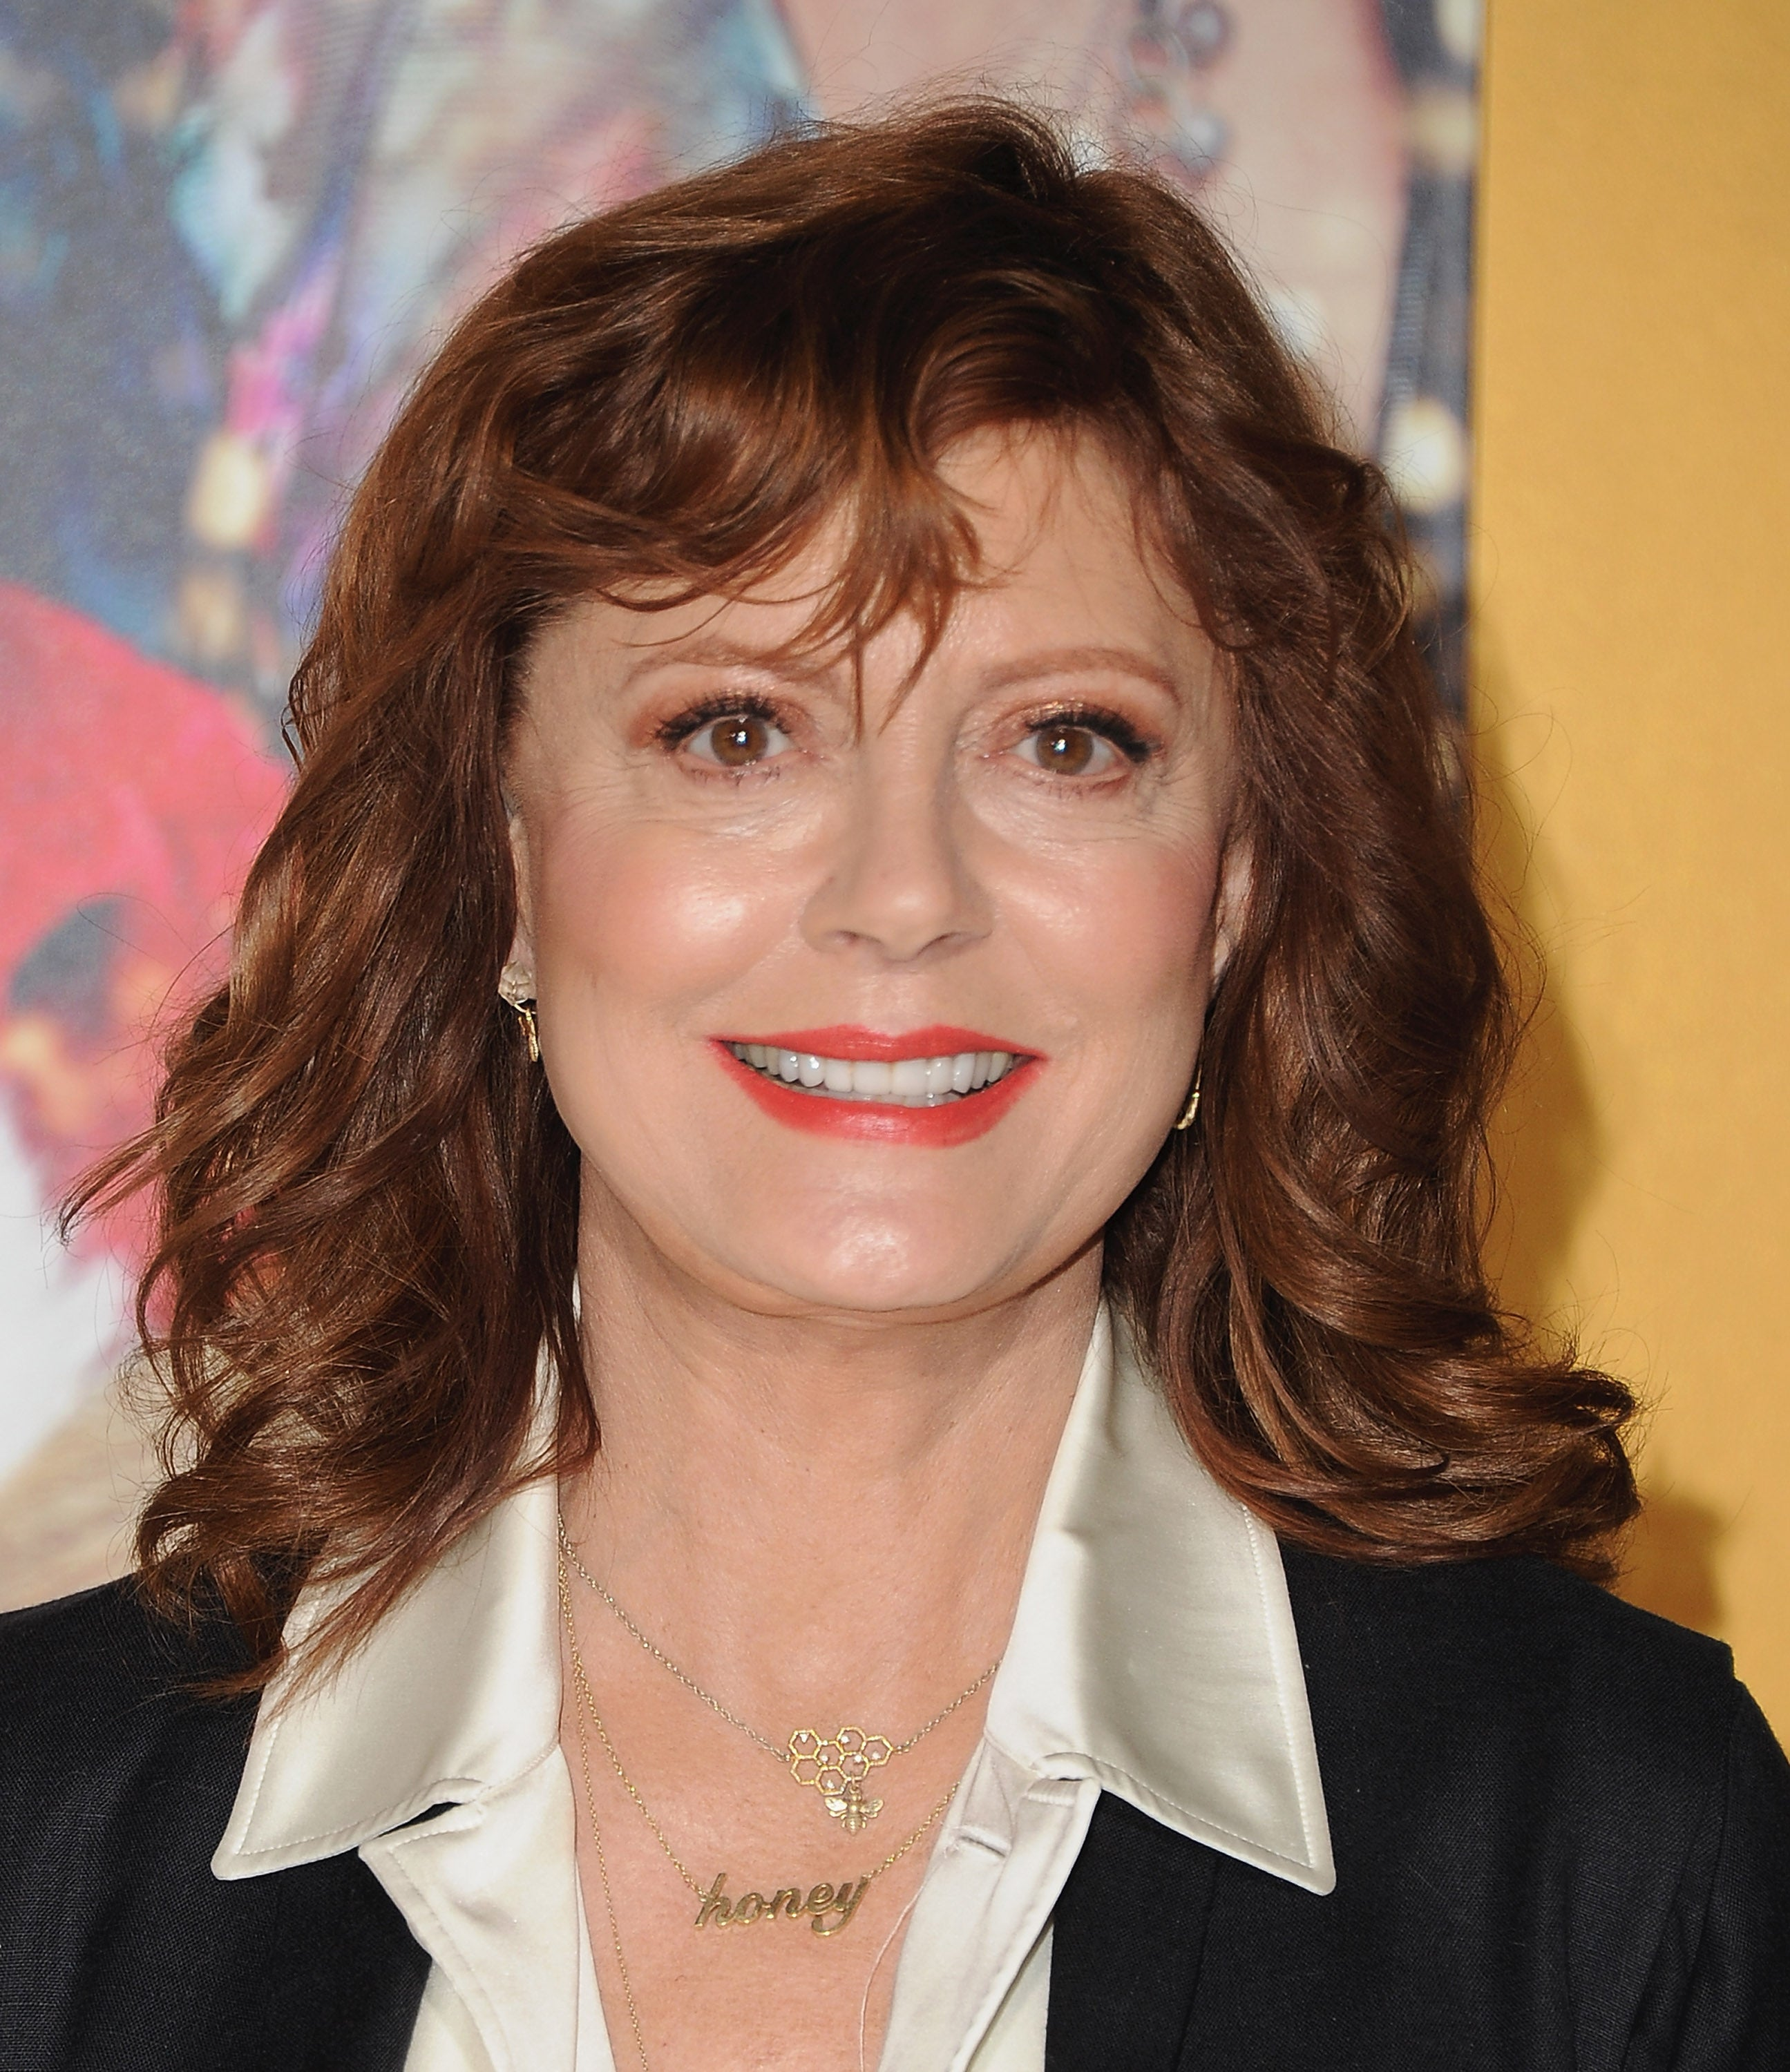 HFPA in Conversation: How Susan Sarandon Became an Actress by ...